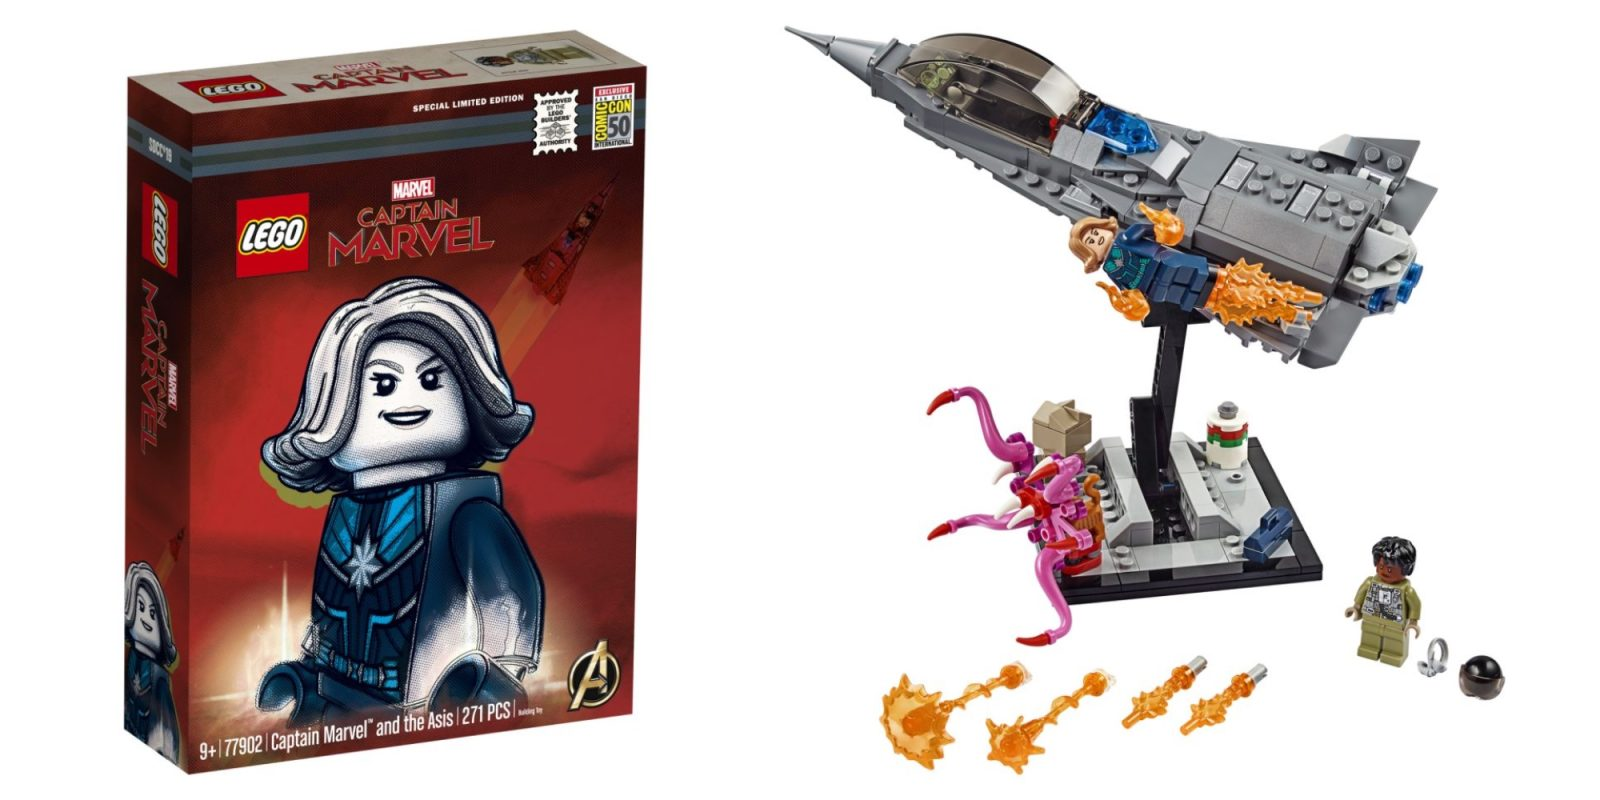 LEGO debuts new Captain Marvel set as one of this year's Comic-Con exclusives